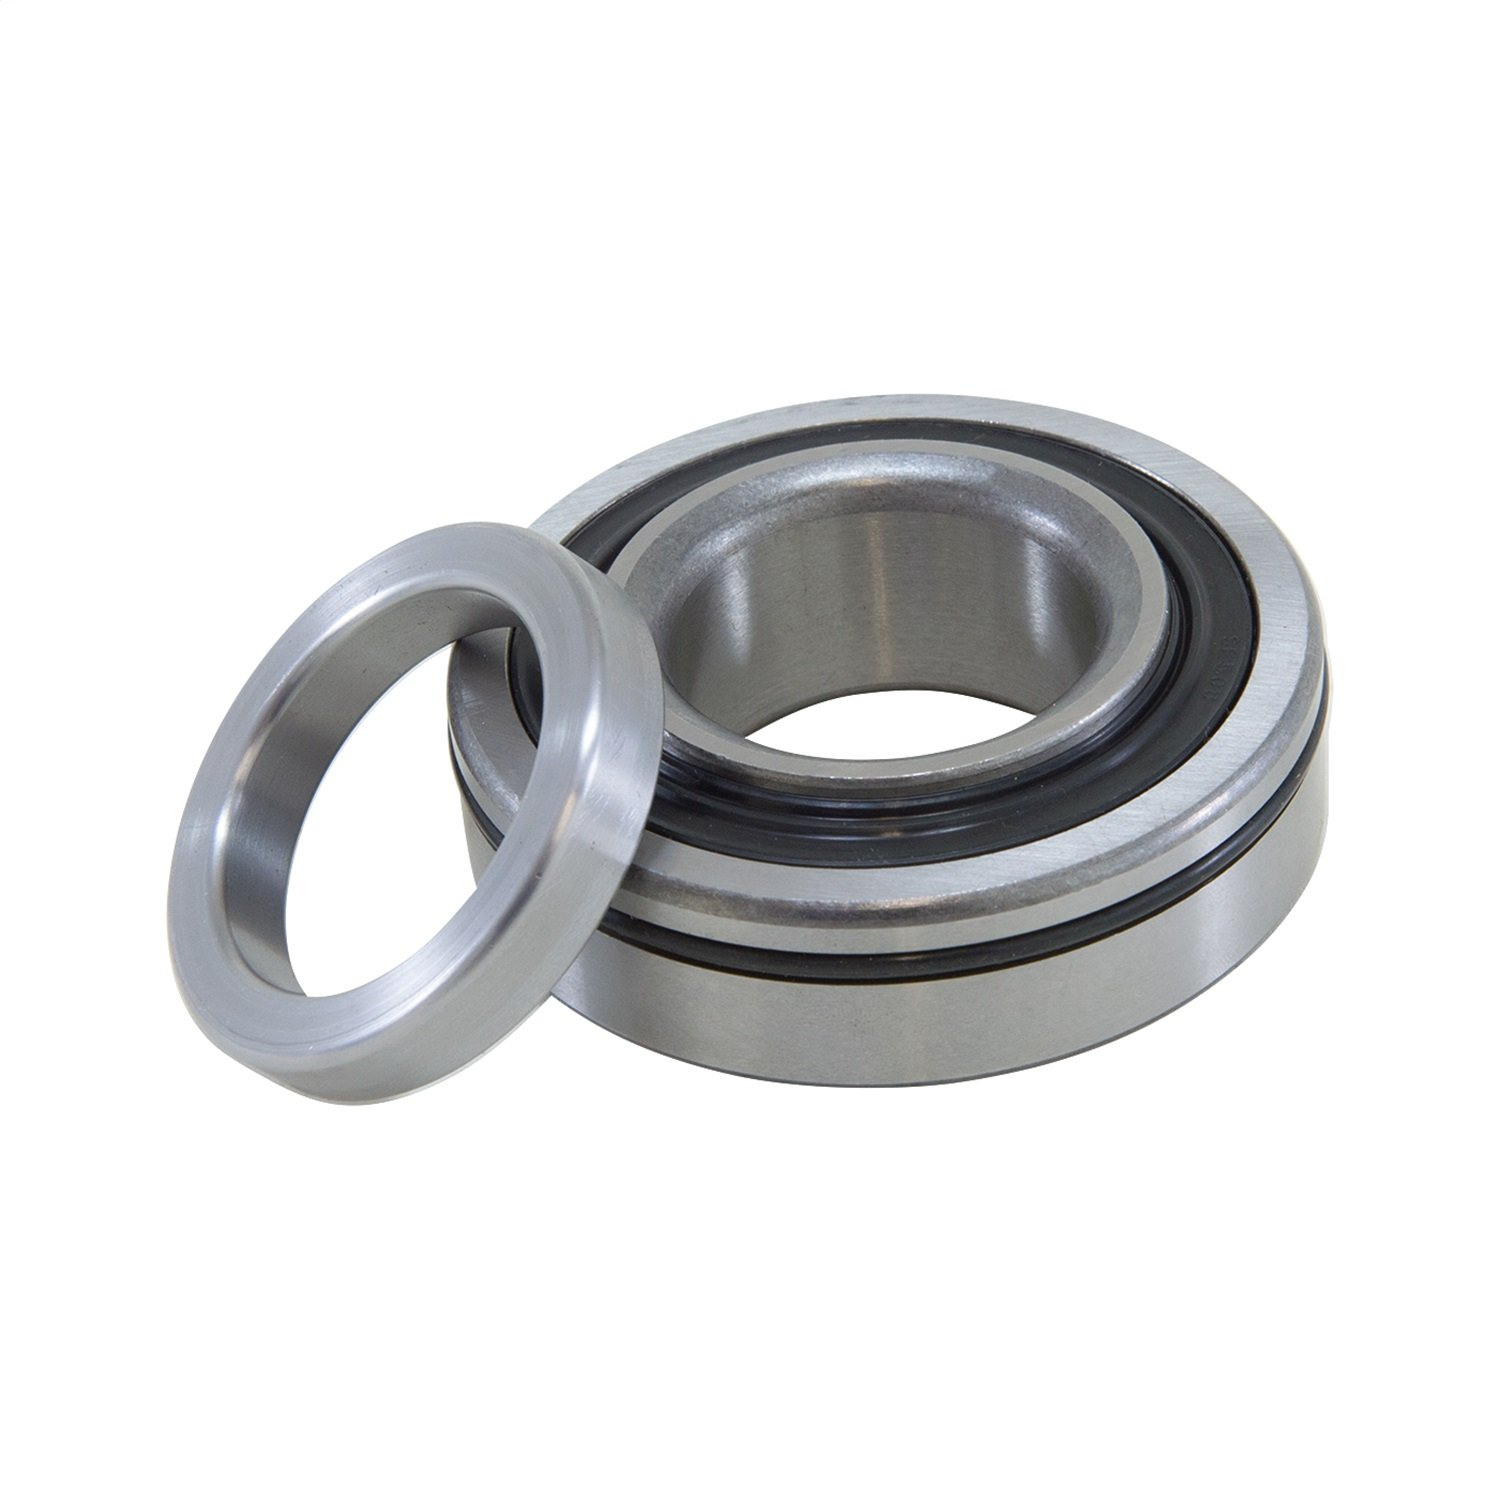 Yukon Gear & Axle (AK RW508DR) Axle Bearing for Ford 9 Differential